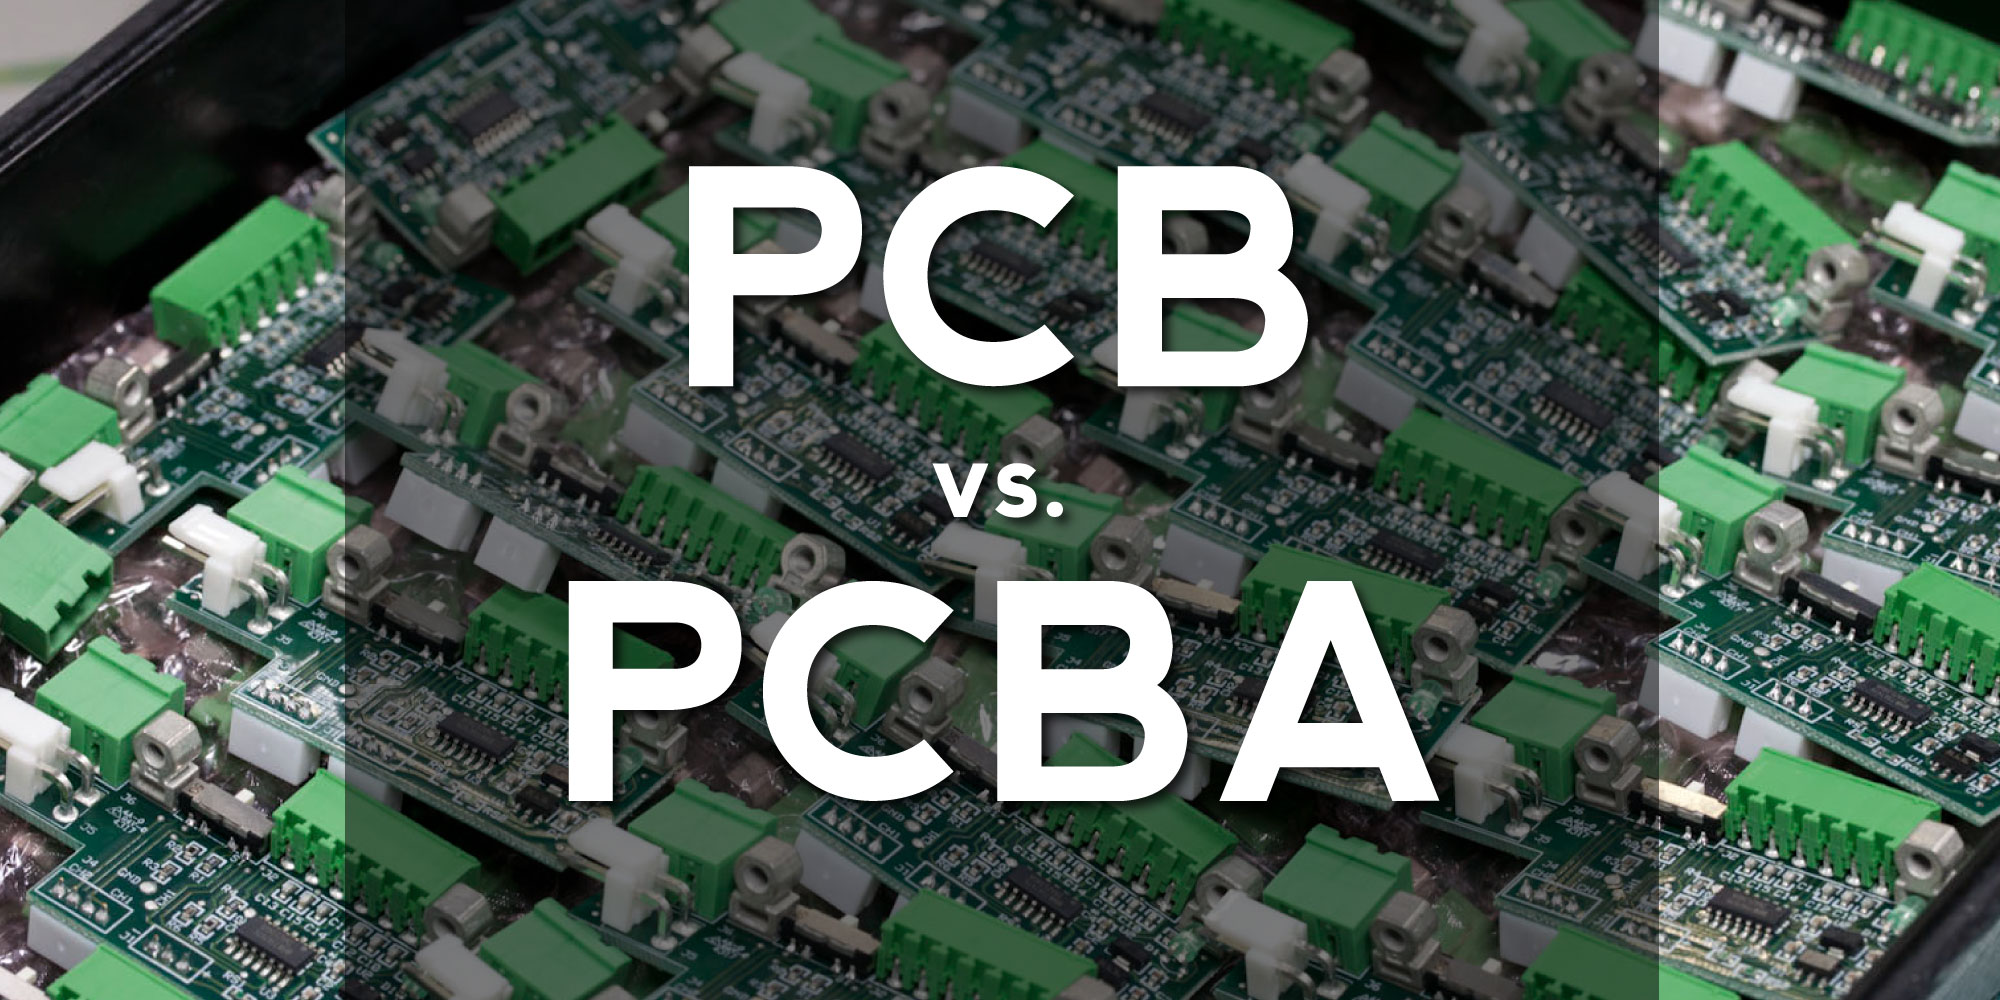 PCB vs PCBA | What is the difference between PCB and PCBA?